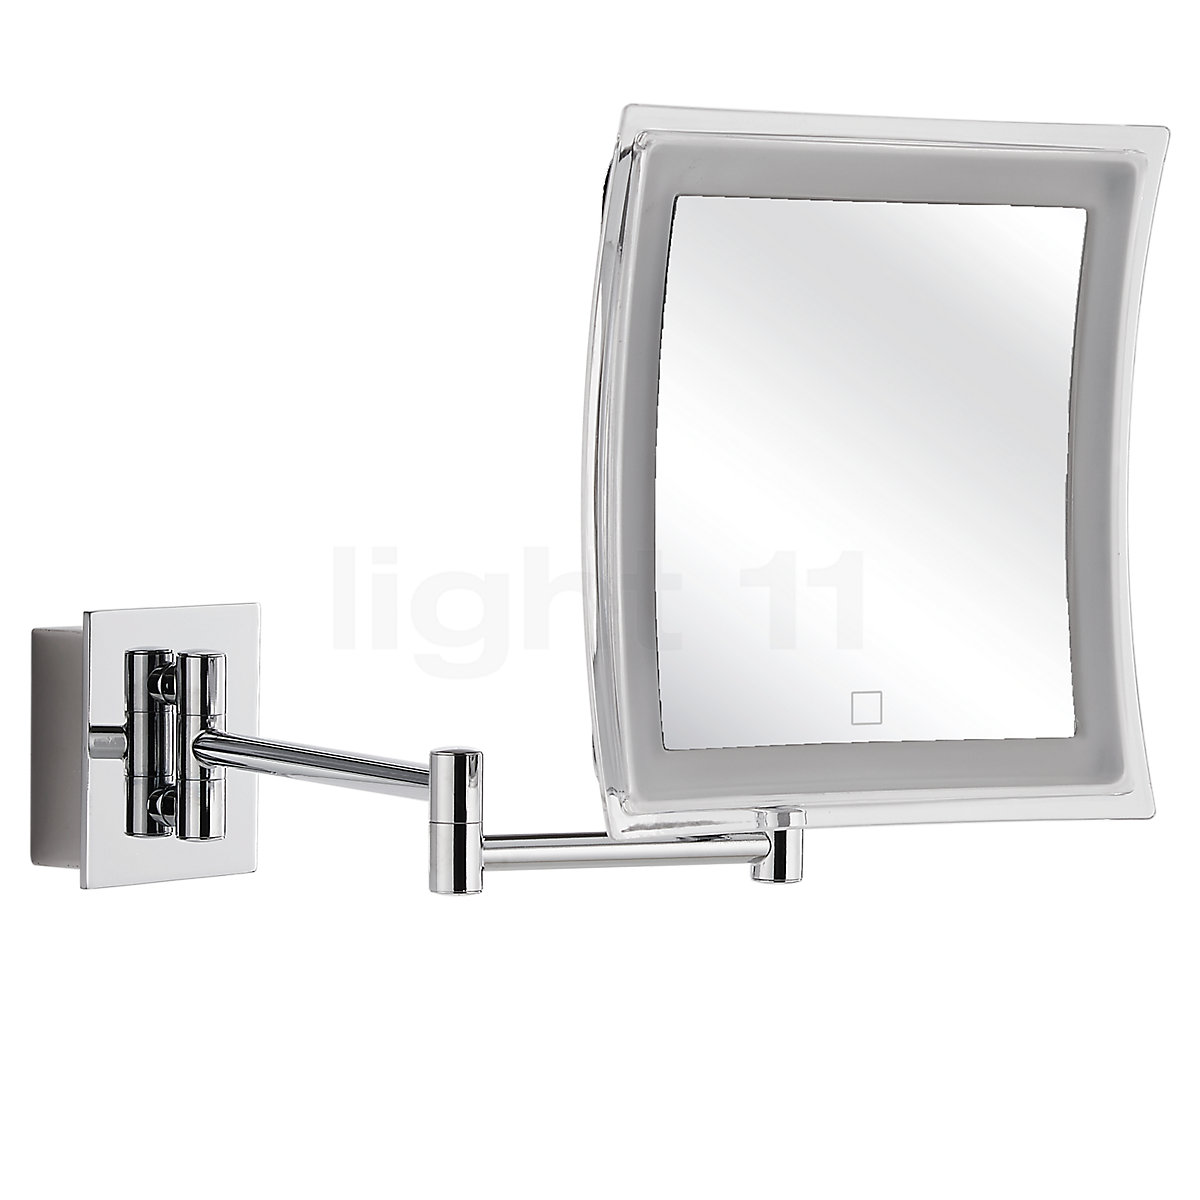 Image of: Buy Decor Walther Bs 84 Touch Wall Mounted Cosmetic Mirror Led At